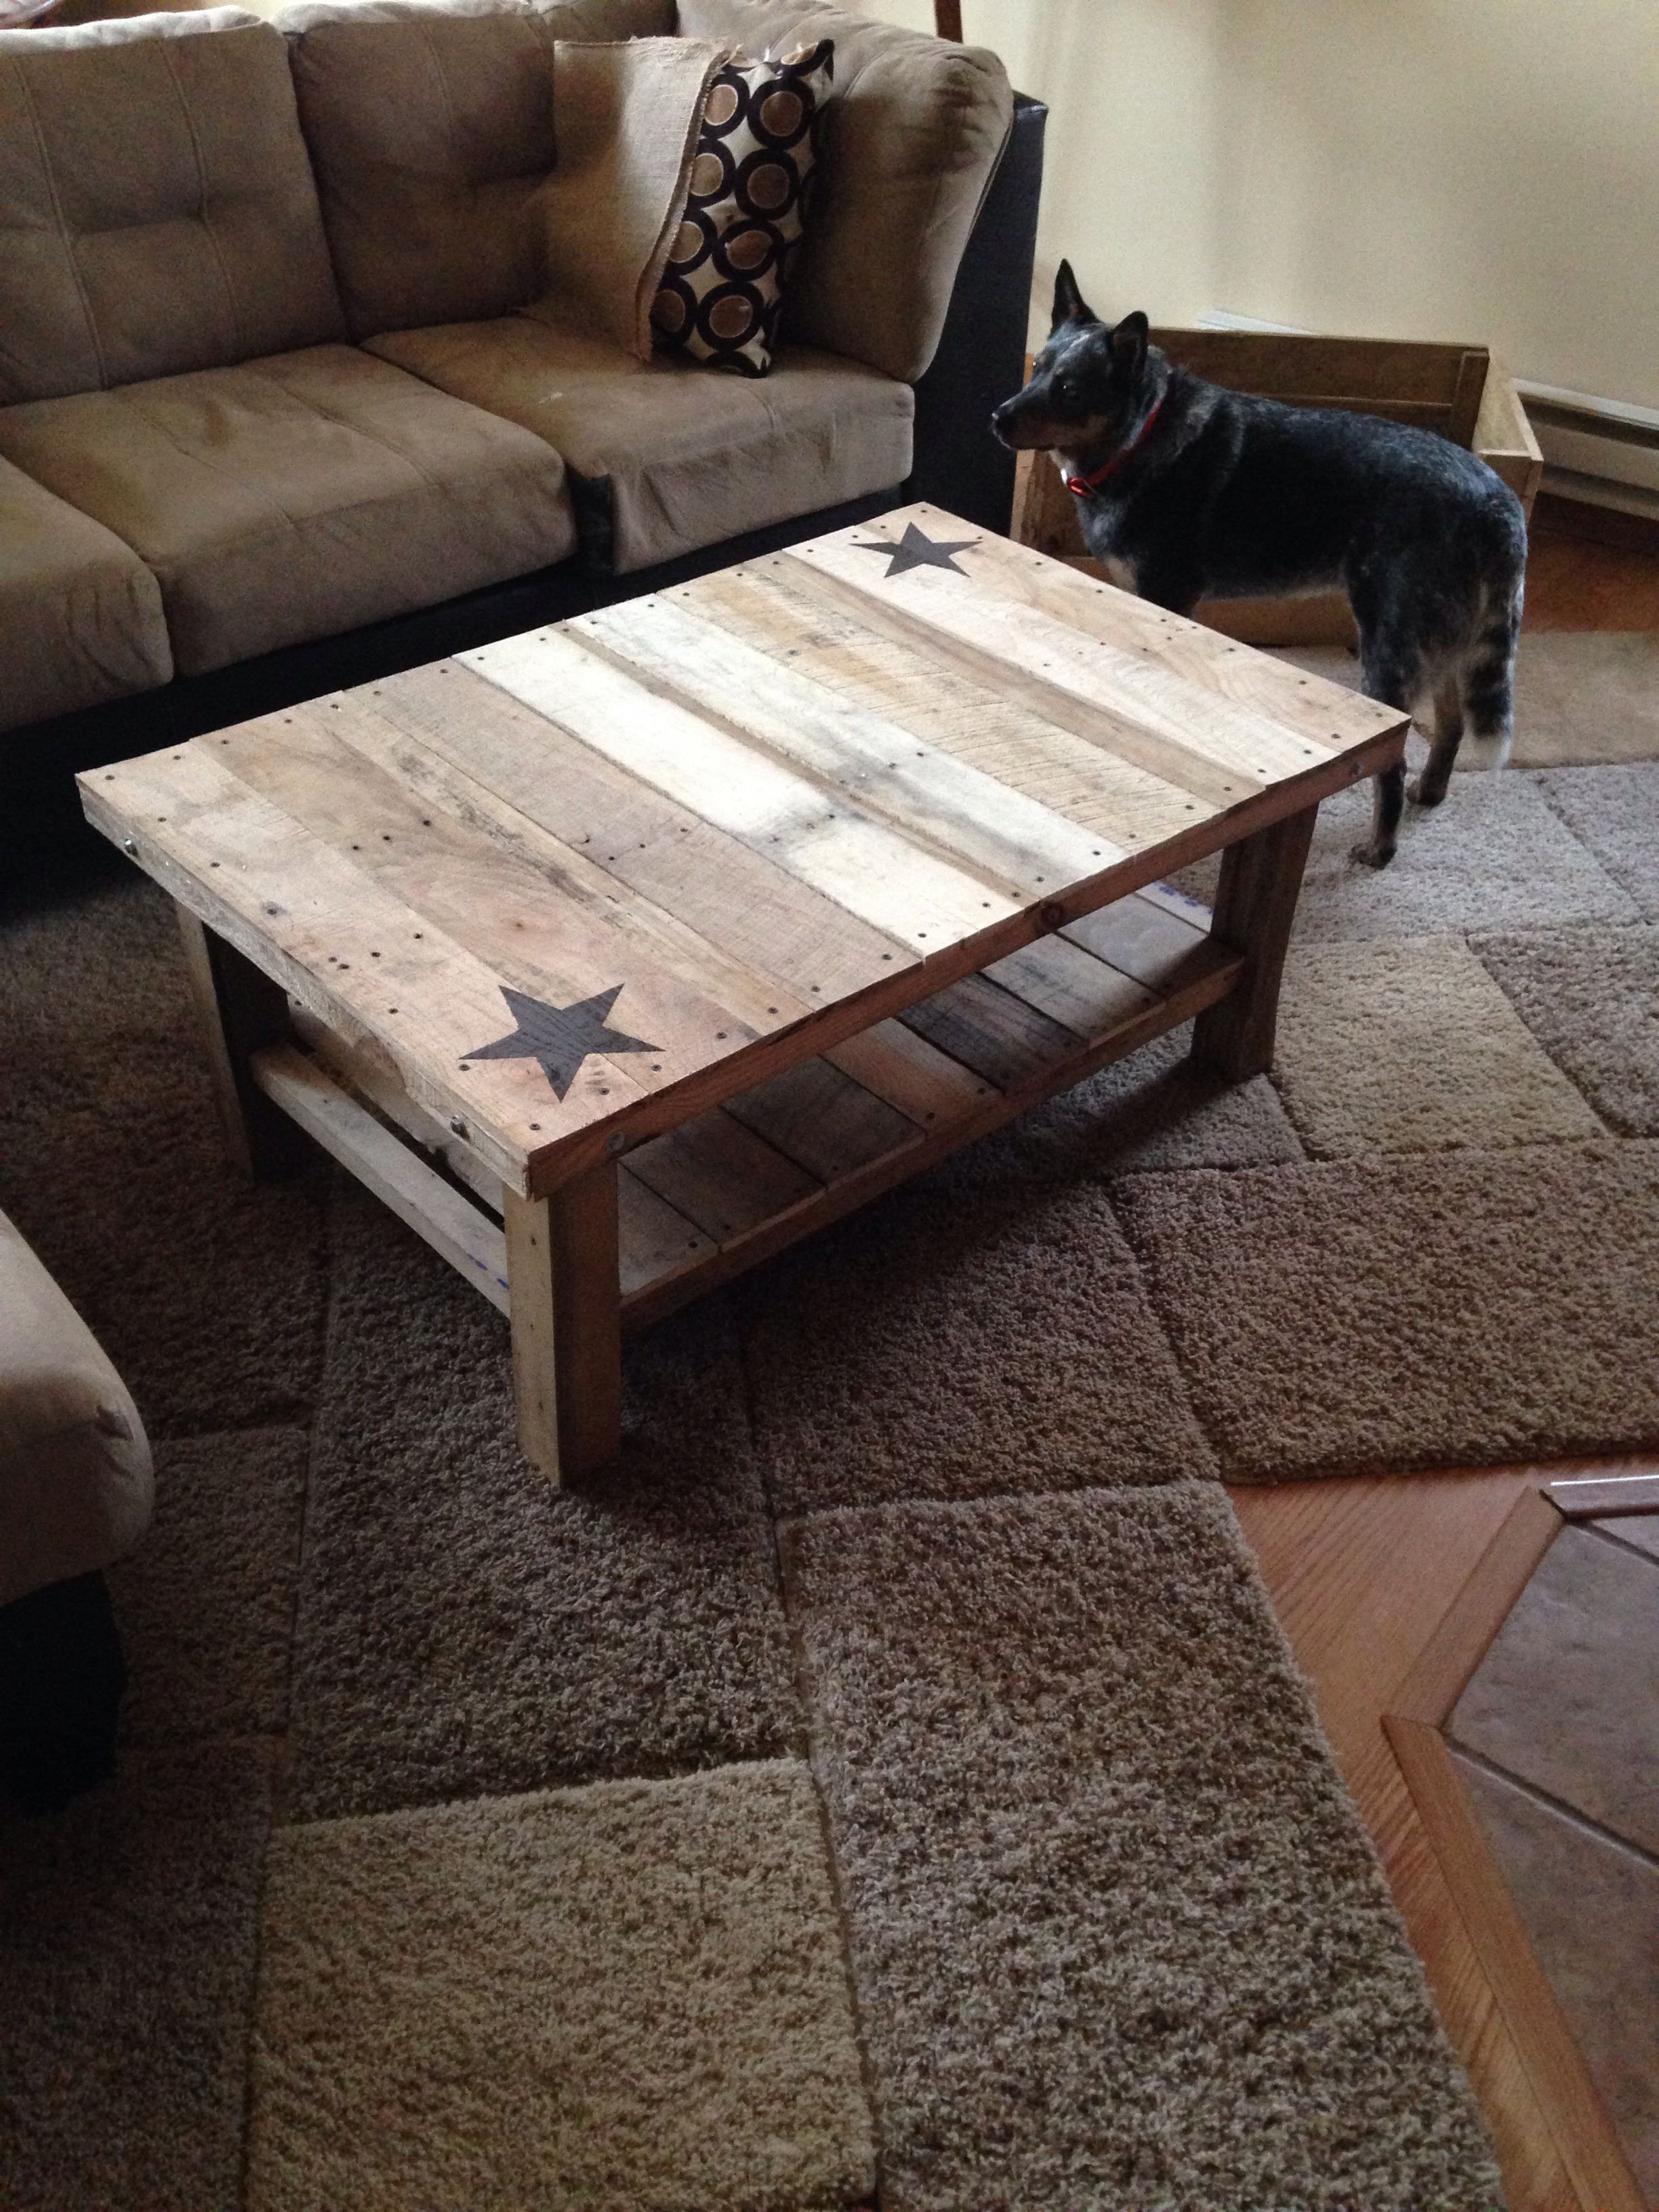 Skid Coffee Table Skid Projects Table Projects Diy